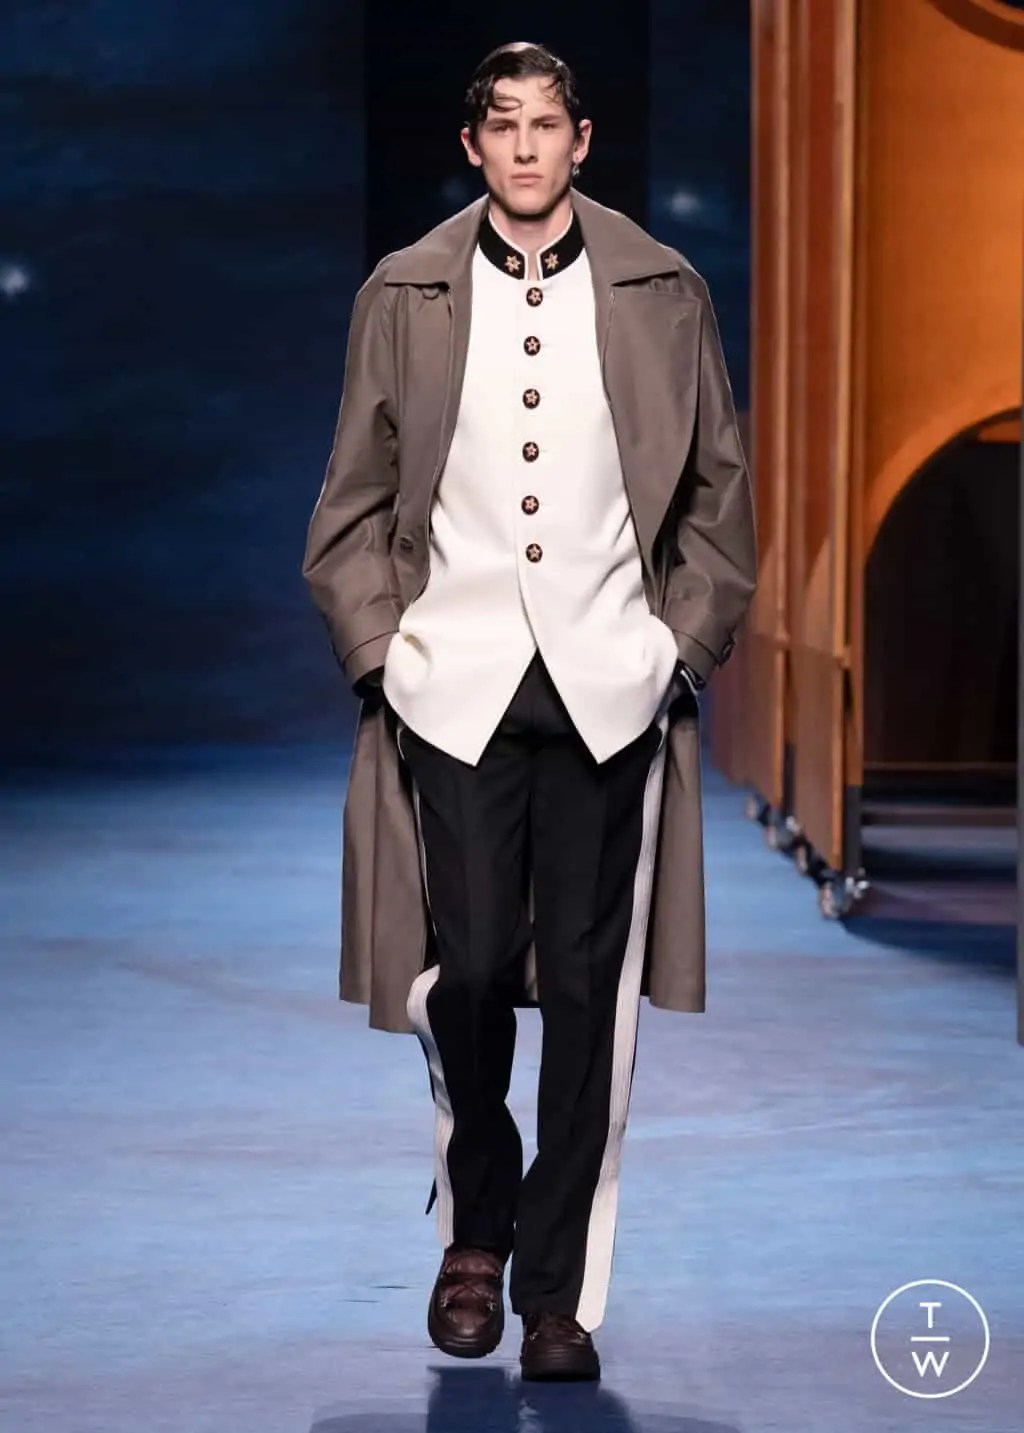 15 FALL/WINTER TRENDS FOR MEN IN 2021 527